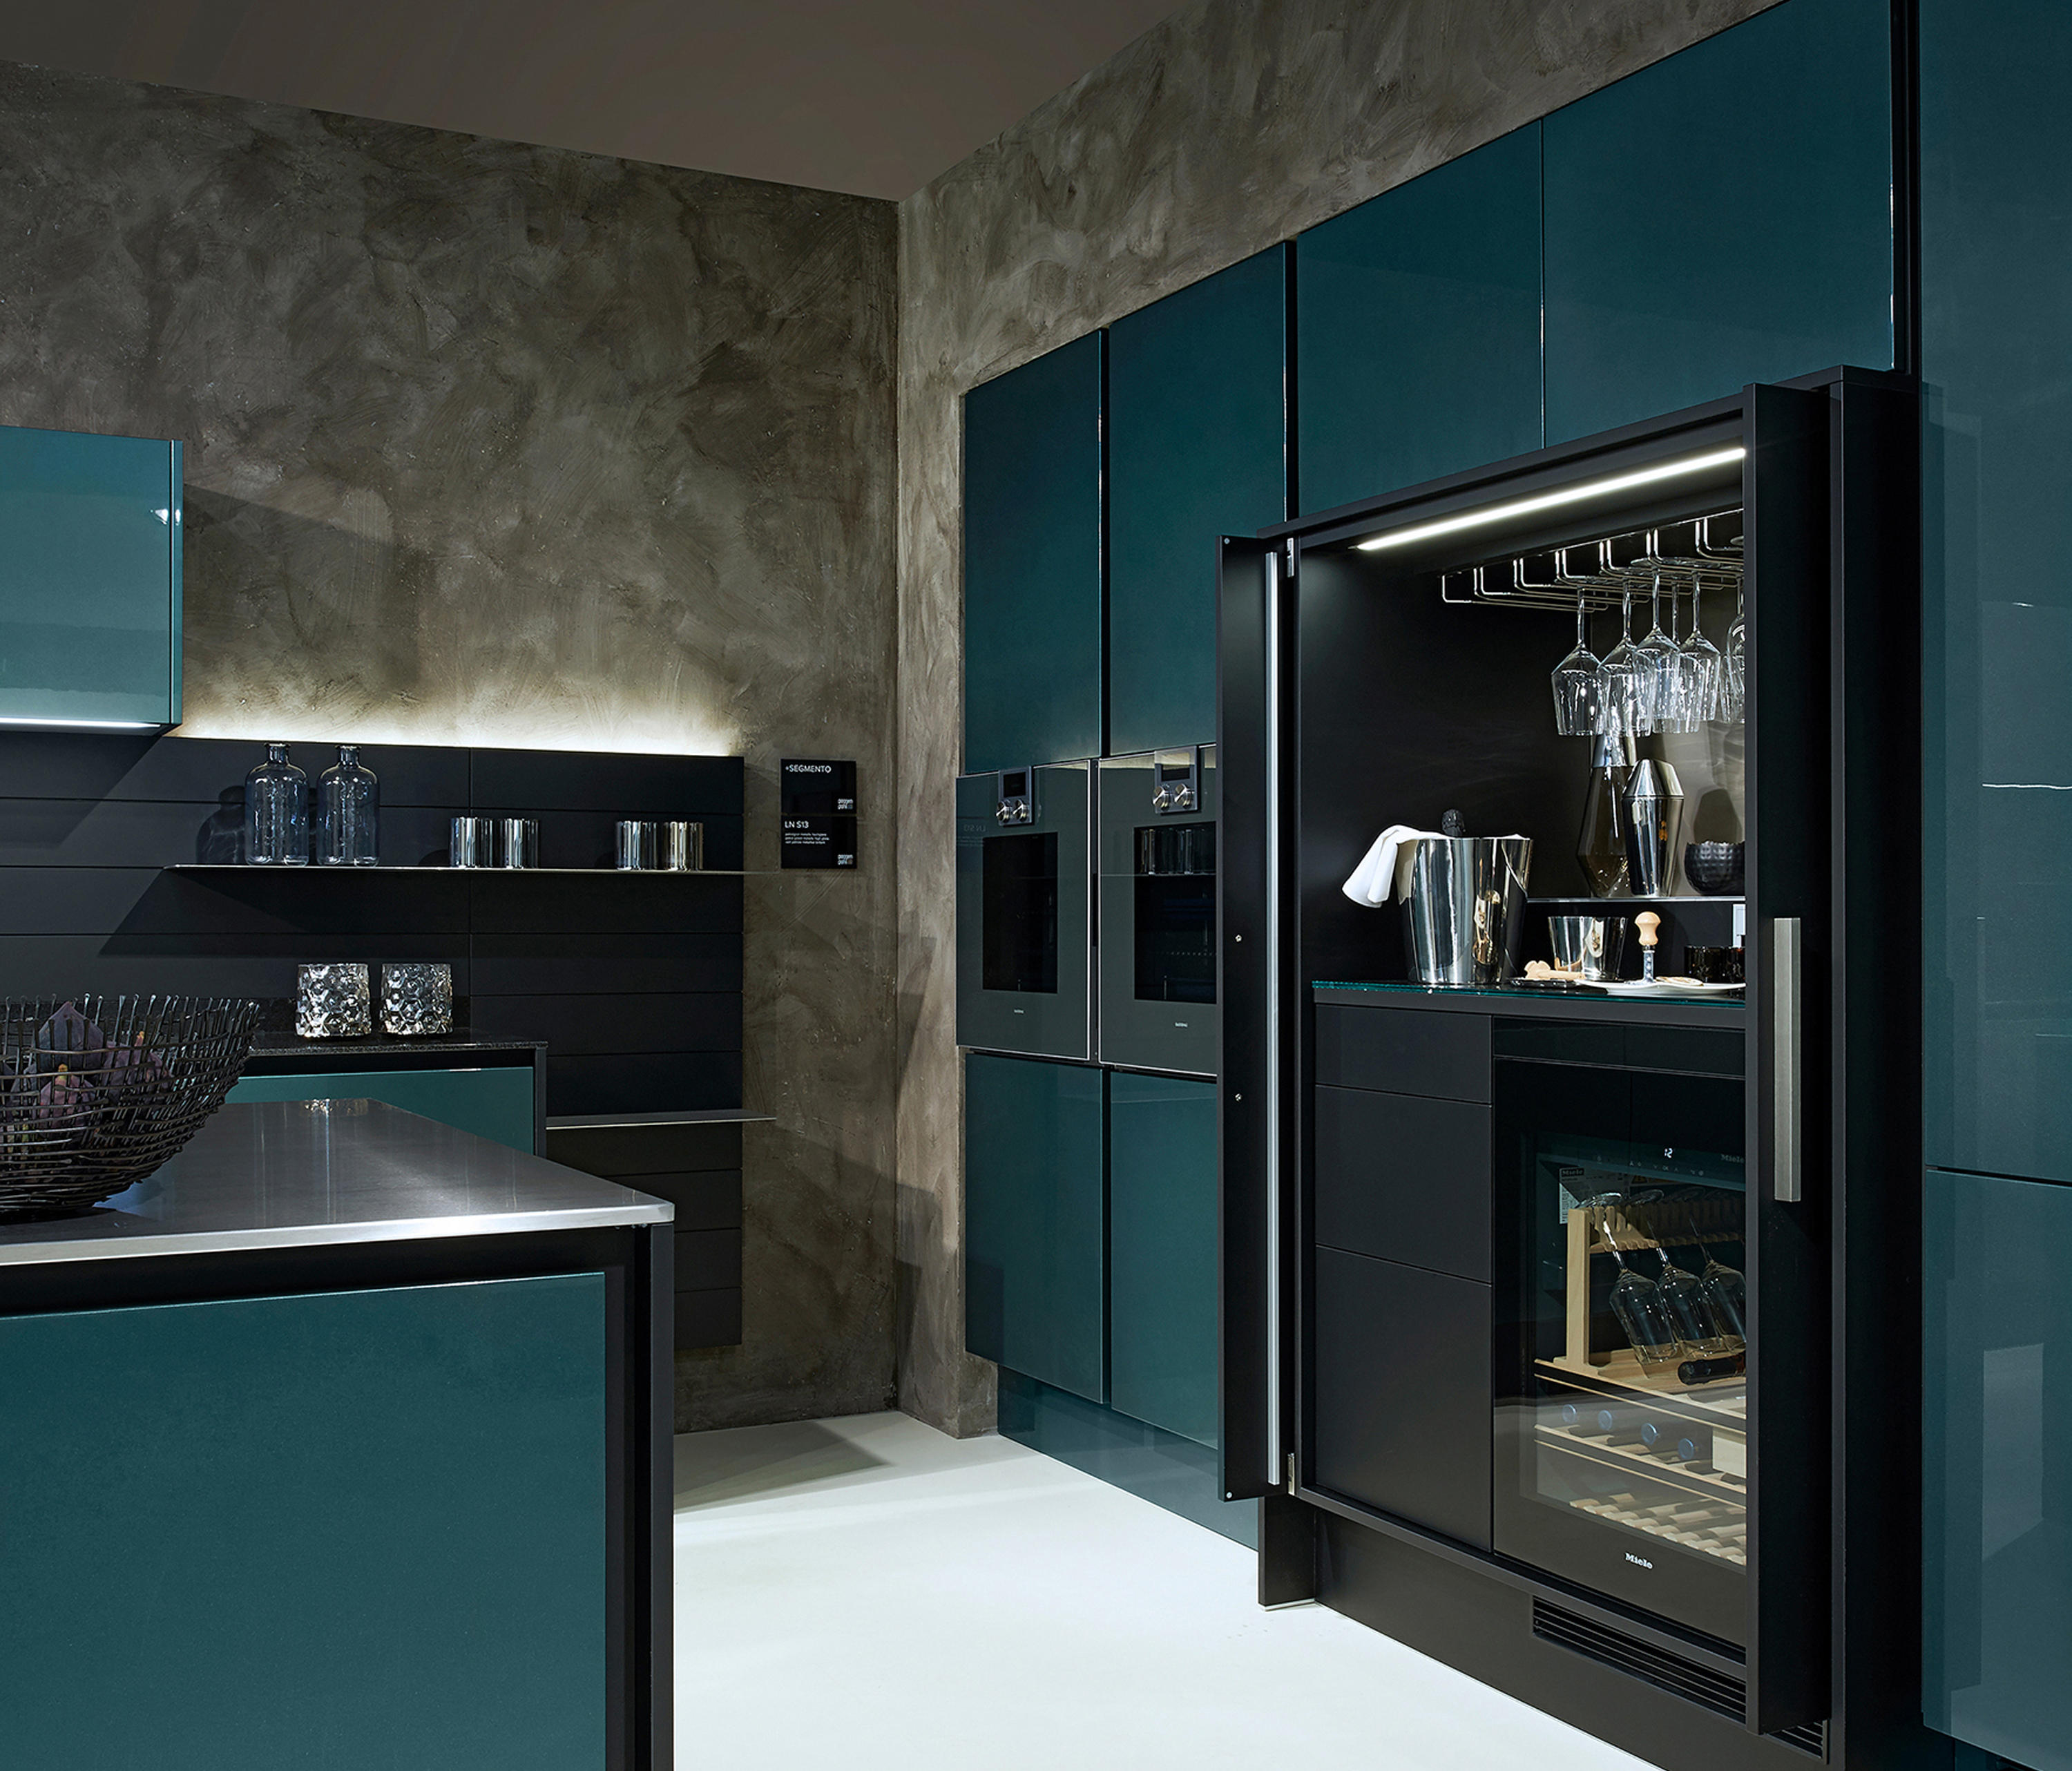 Chrome Plated Lacquer Fitted Kitchens From Poggenpohl